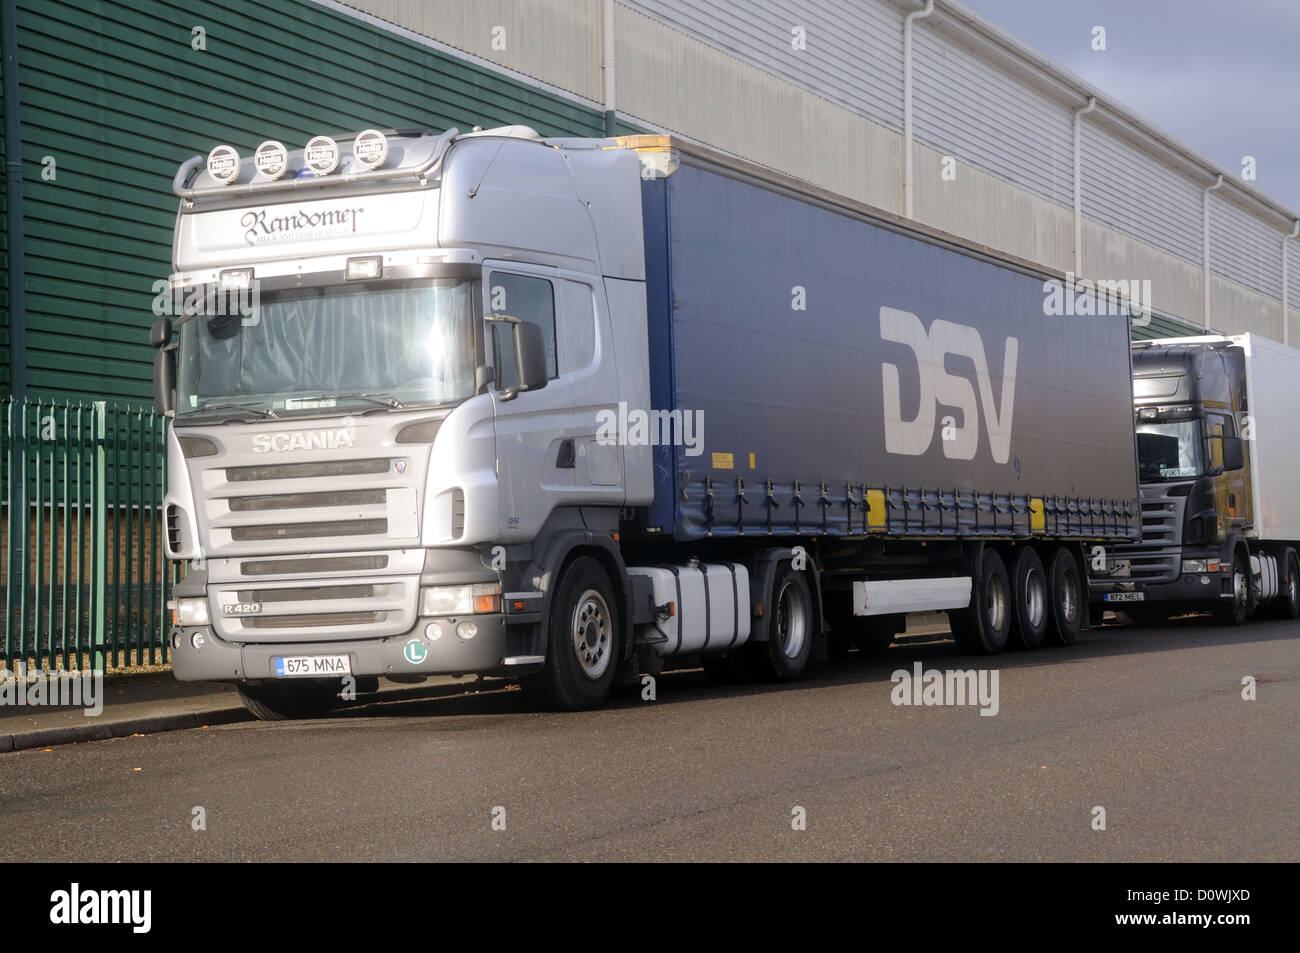 A 'Randomer' Estonian registered Scania R420 tractor unit with a trailer in DSV livery in Leicester, Leicestershire, - Stock Image